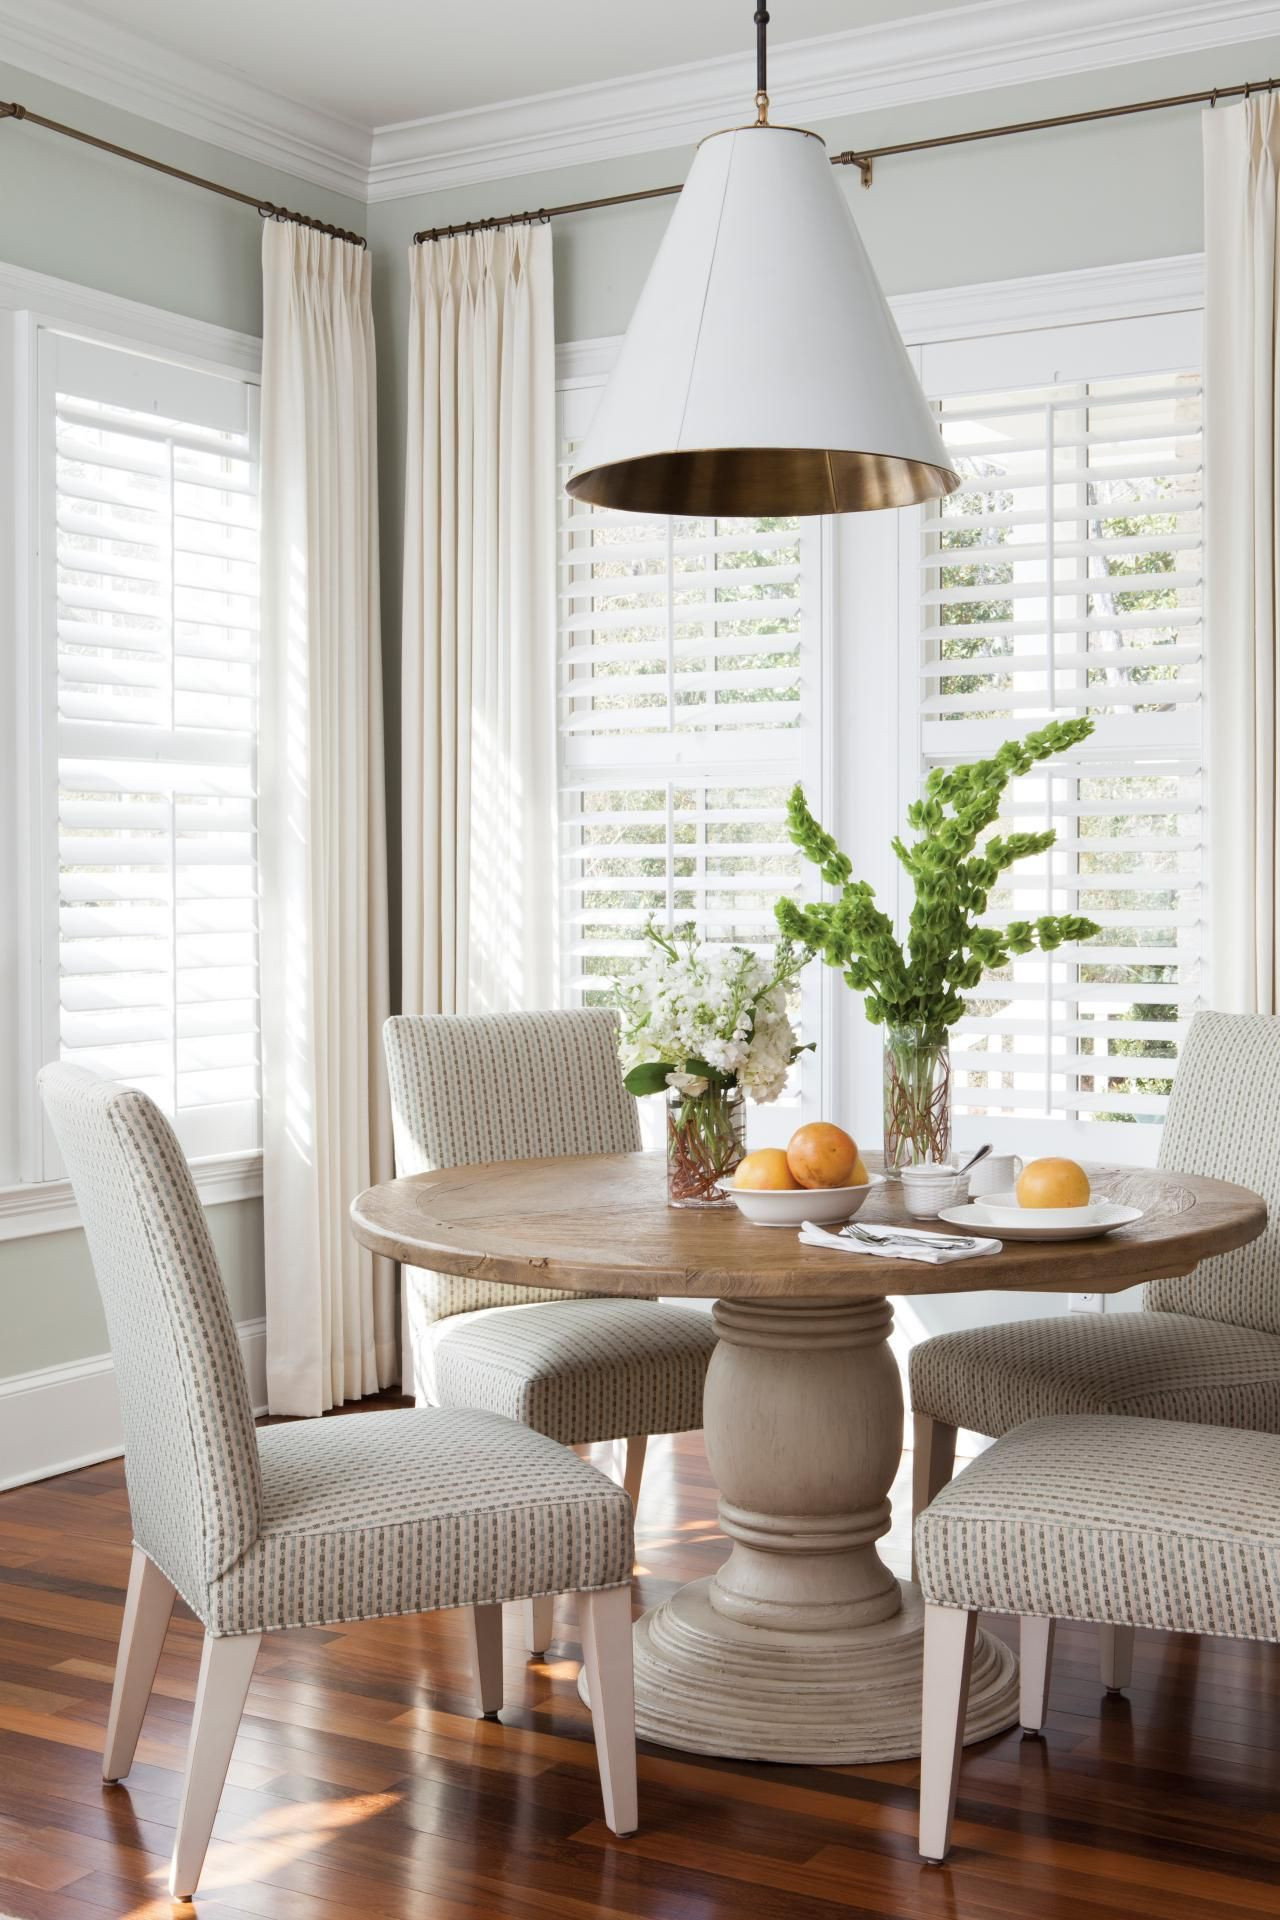 8 Tips For Making Beautiful Vignettes Interior Design Styles And Color Schemes For Home Dining Room Window Treatments Dining Room Windows Elegant Dining Room